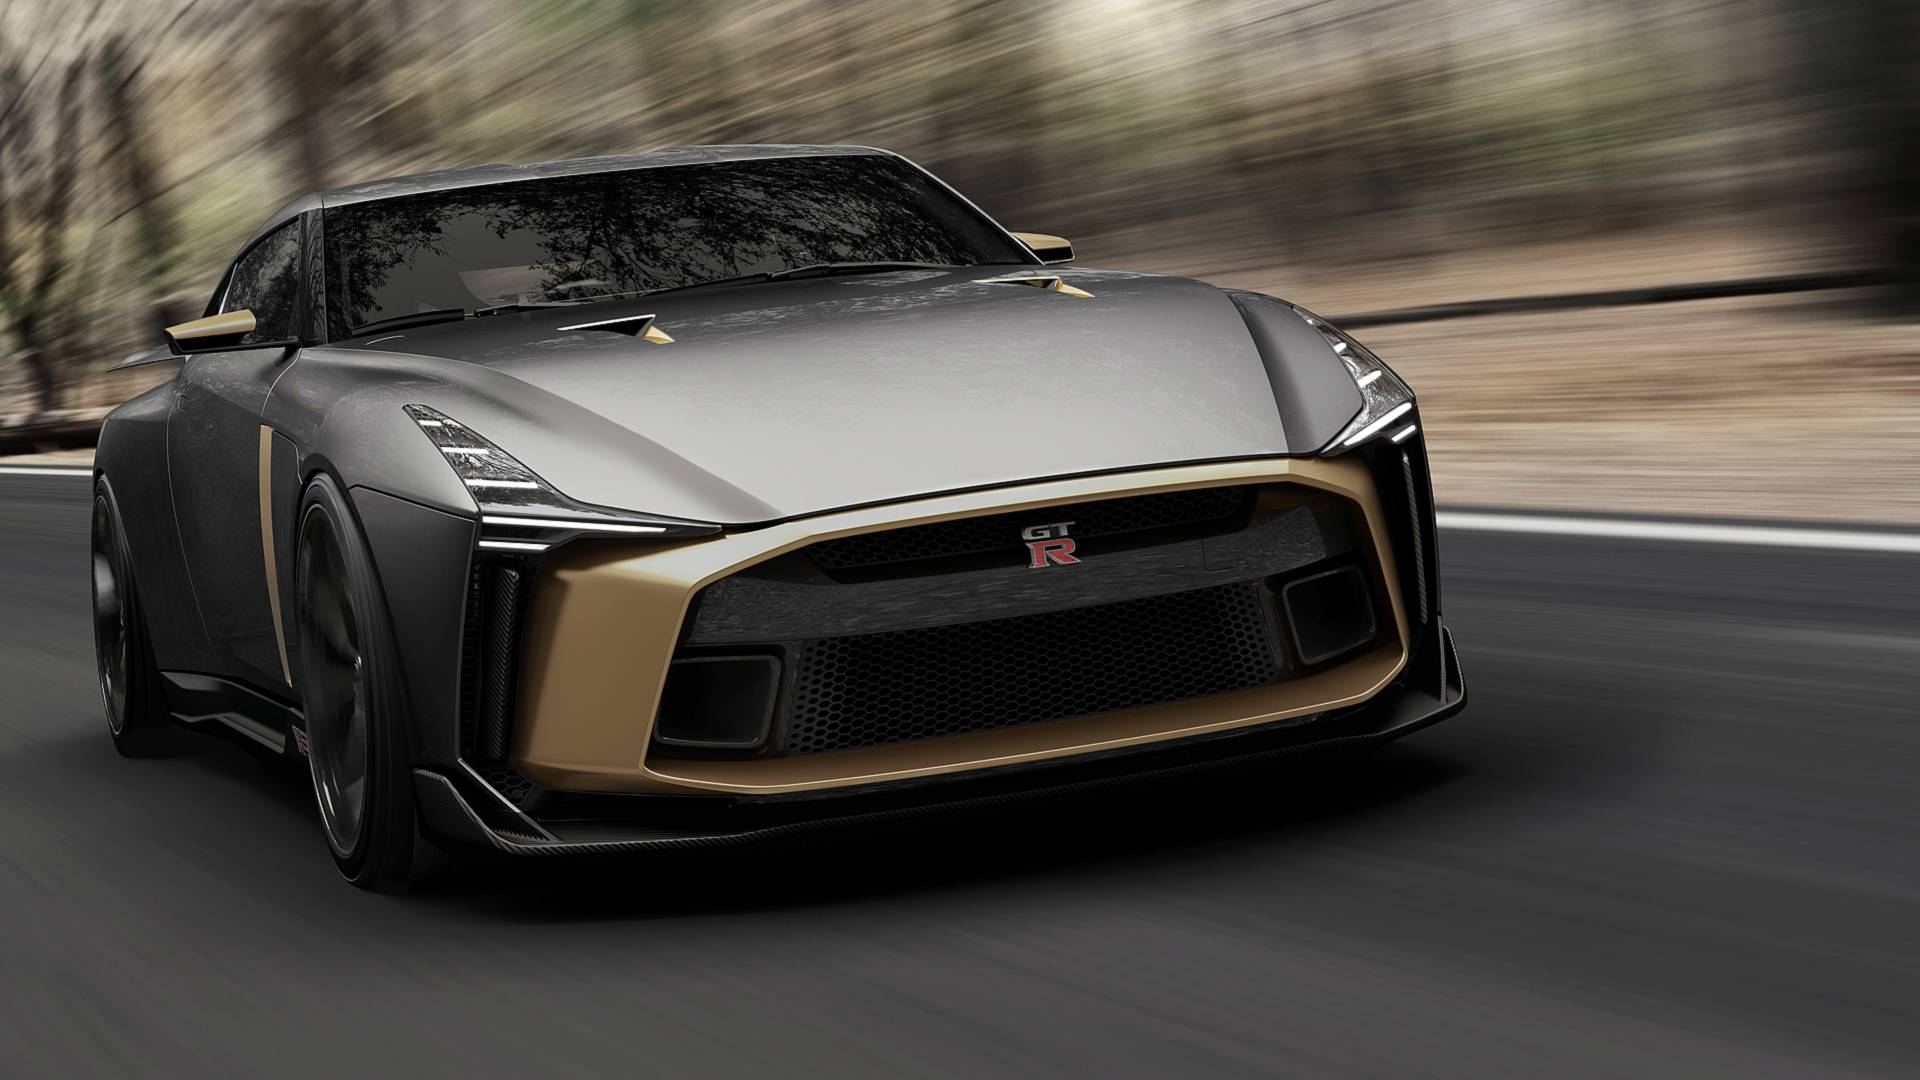 Next Gen Gtr >> Nissan Will Preview Next Gen Gt R With New Concept